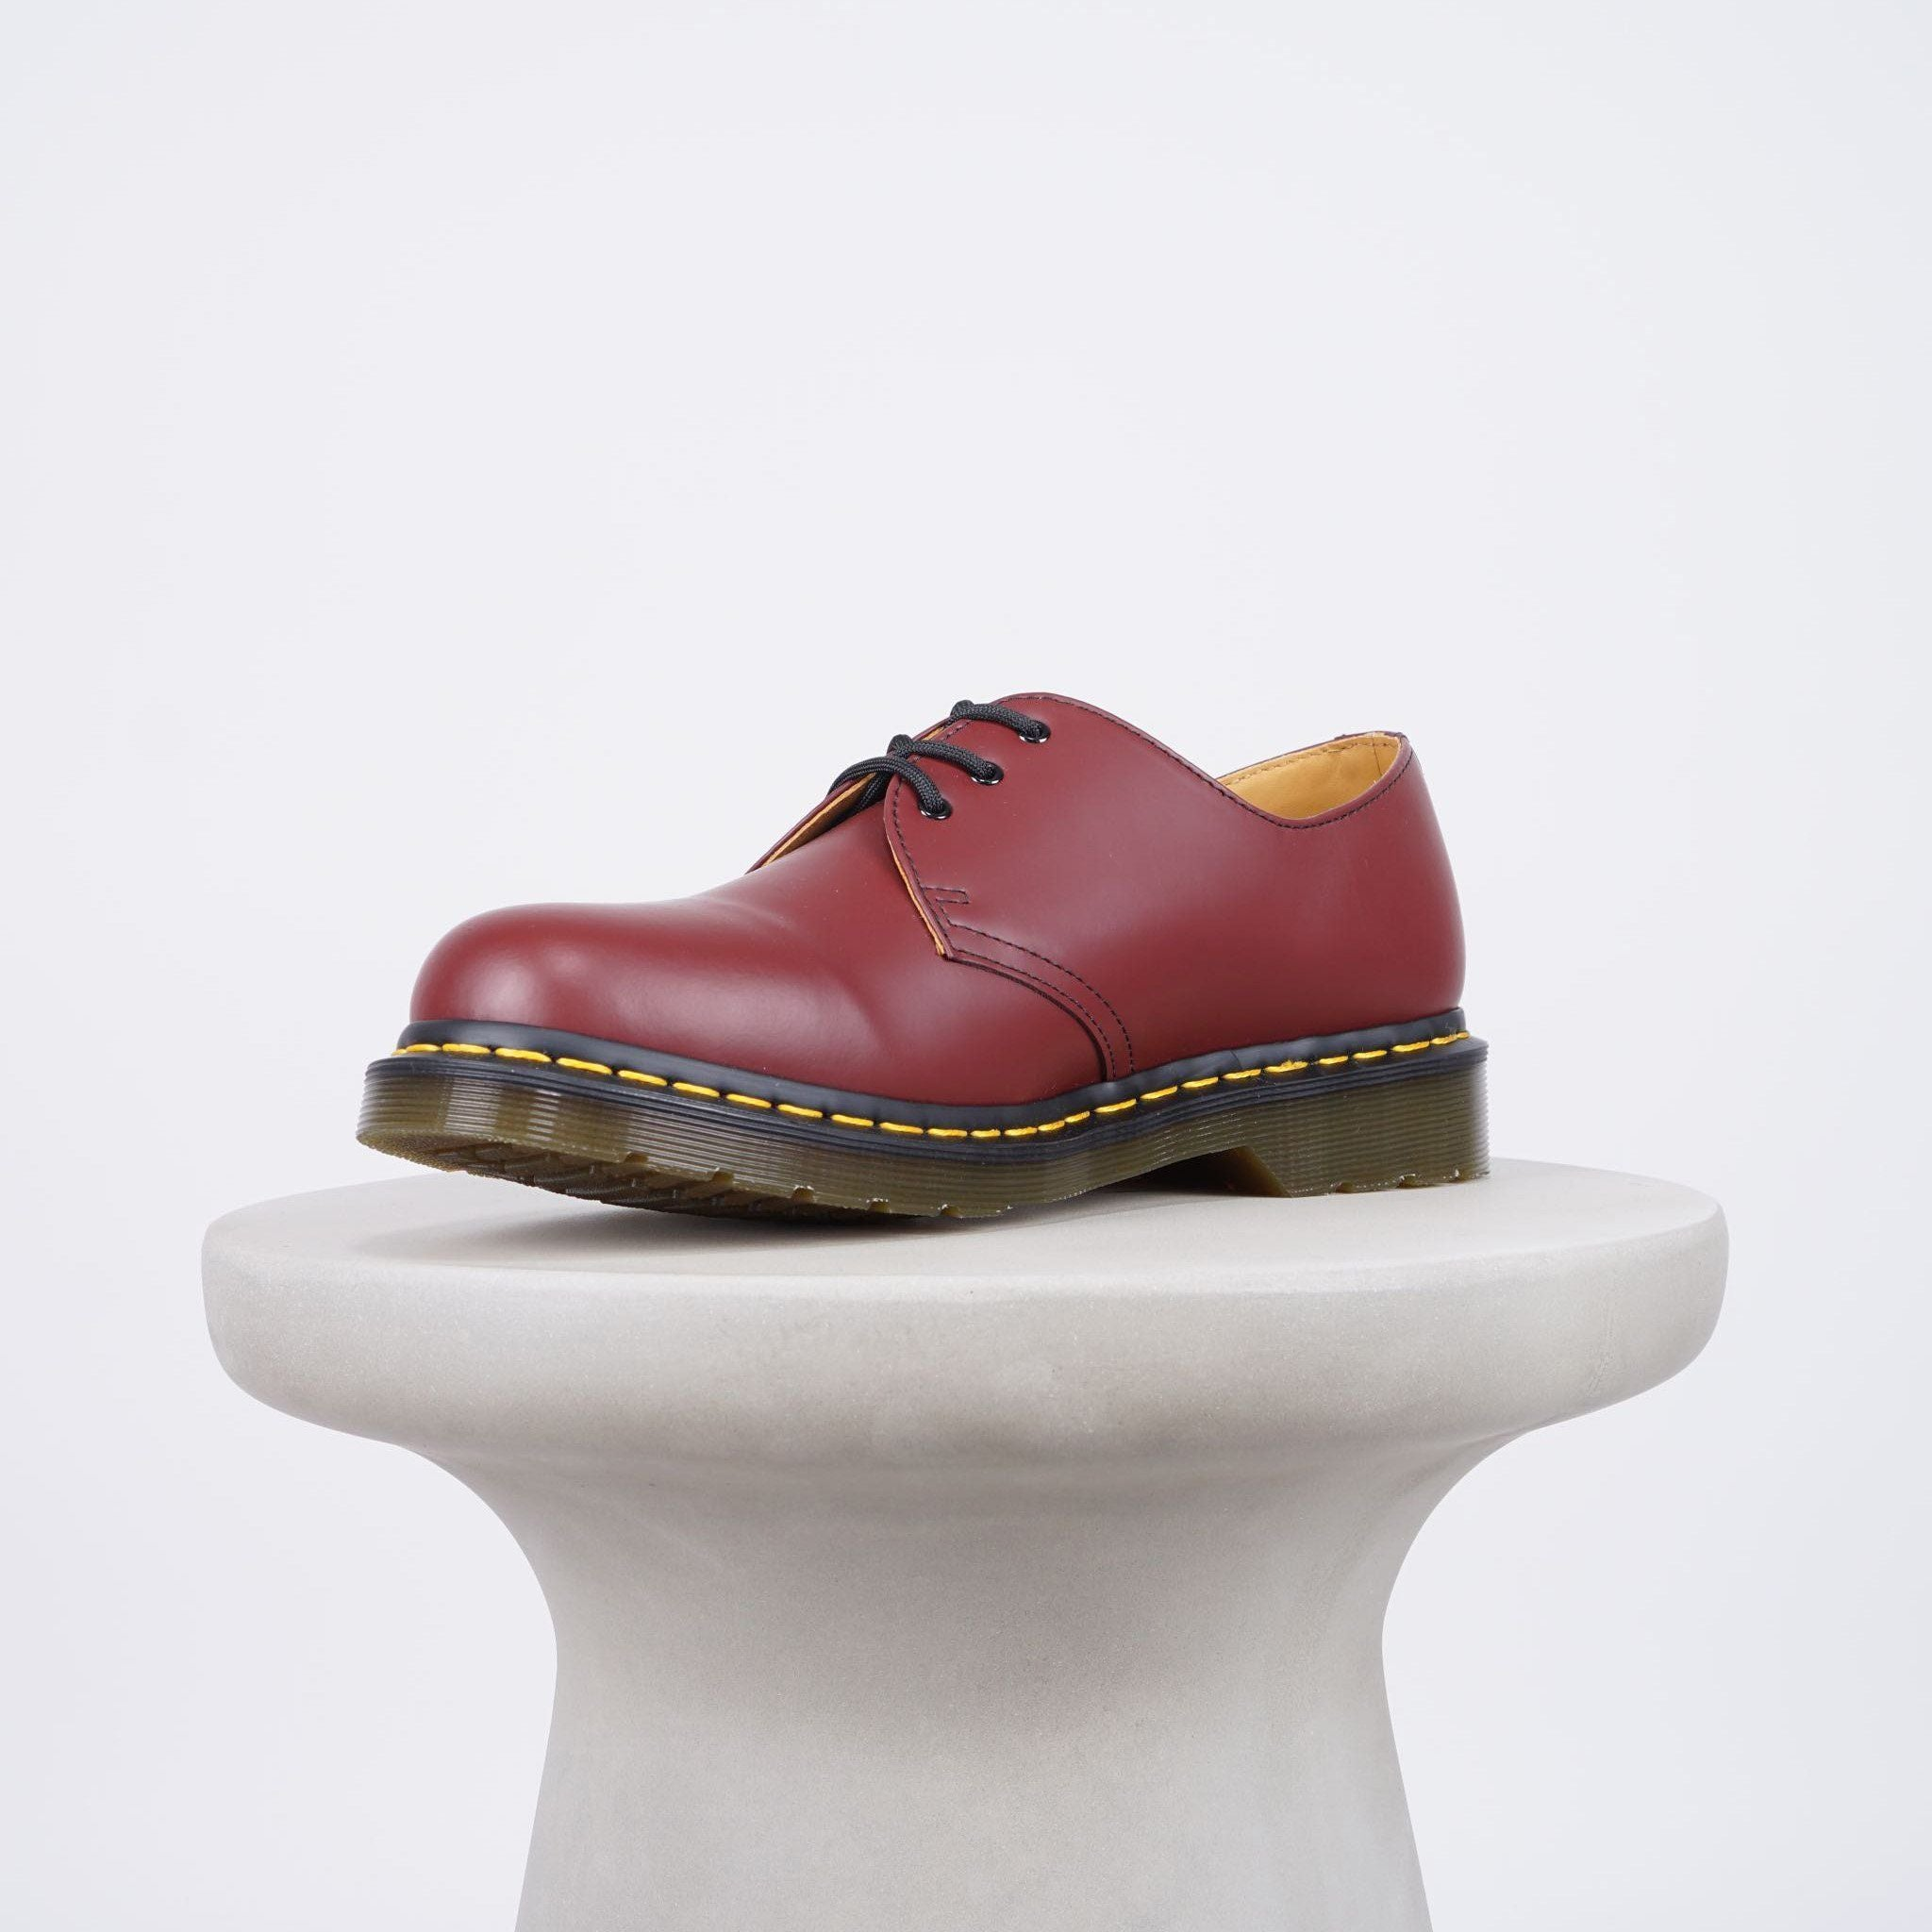 Dr. Martens 1461 shoes - Cherry